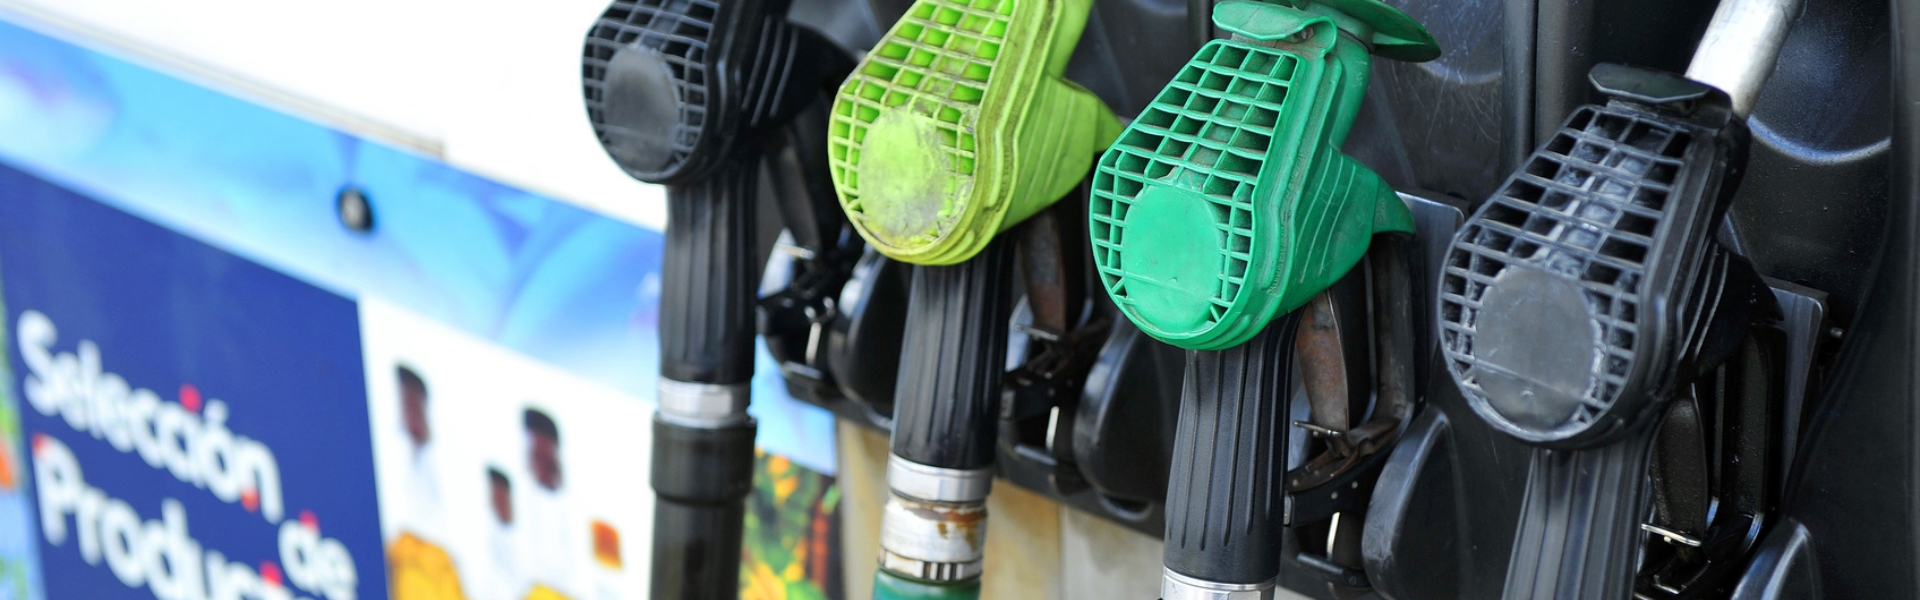 Best fuel additives manufactured in the Uk by Chemiphase ltd.